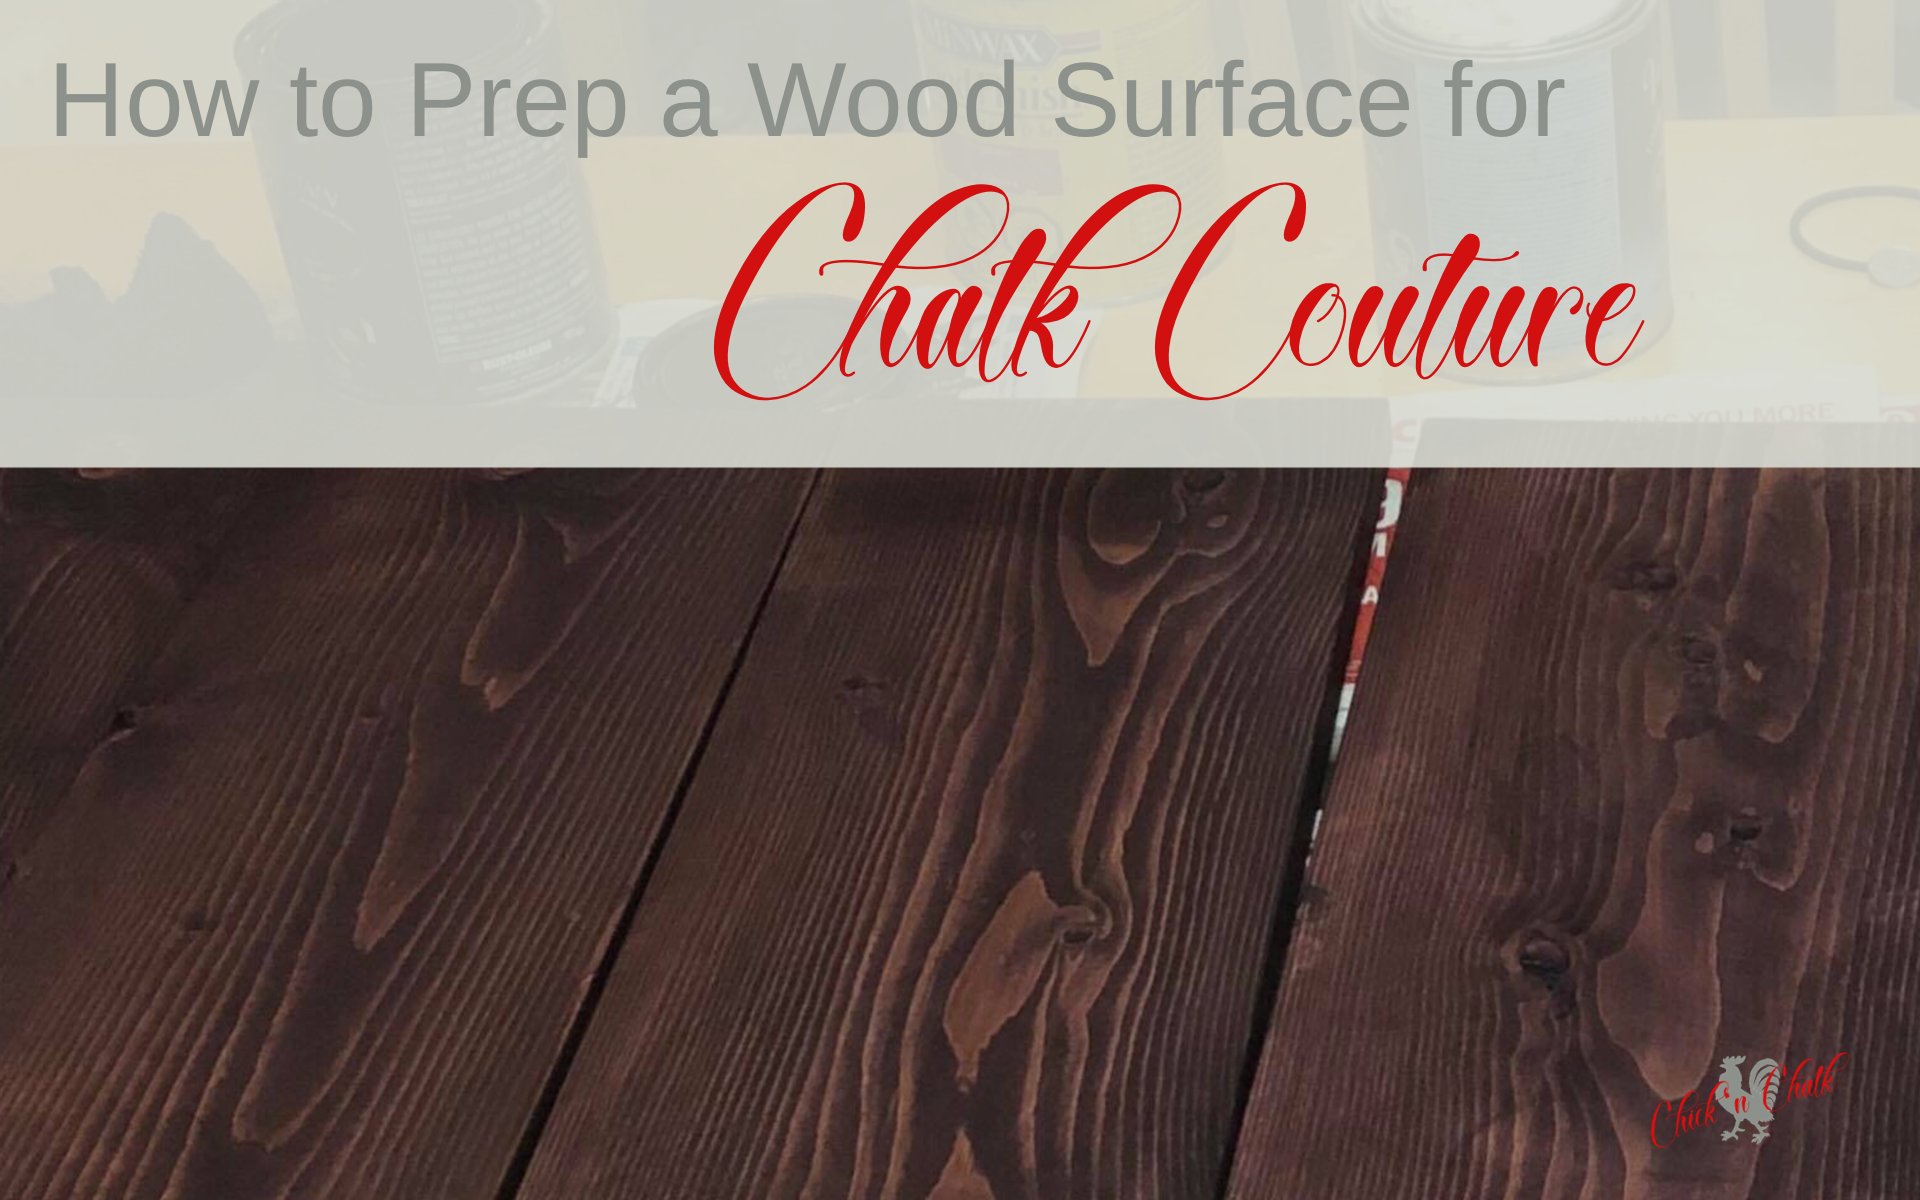 Prep a new wood surface for Chalk Coiture